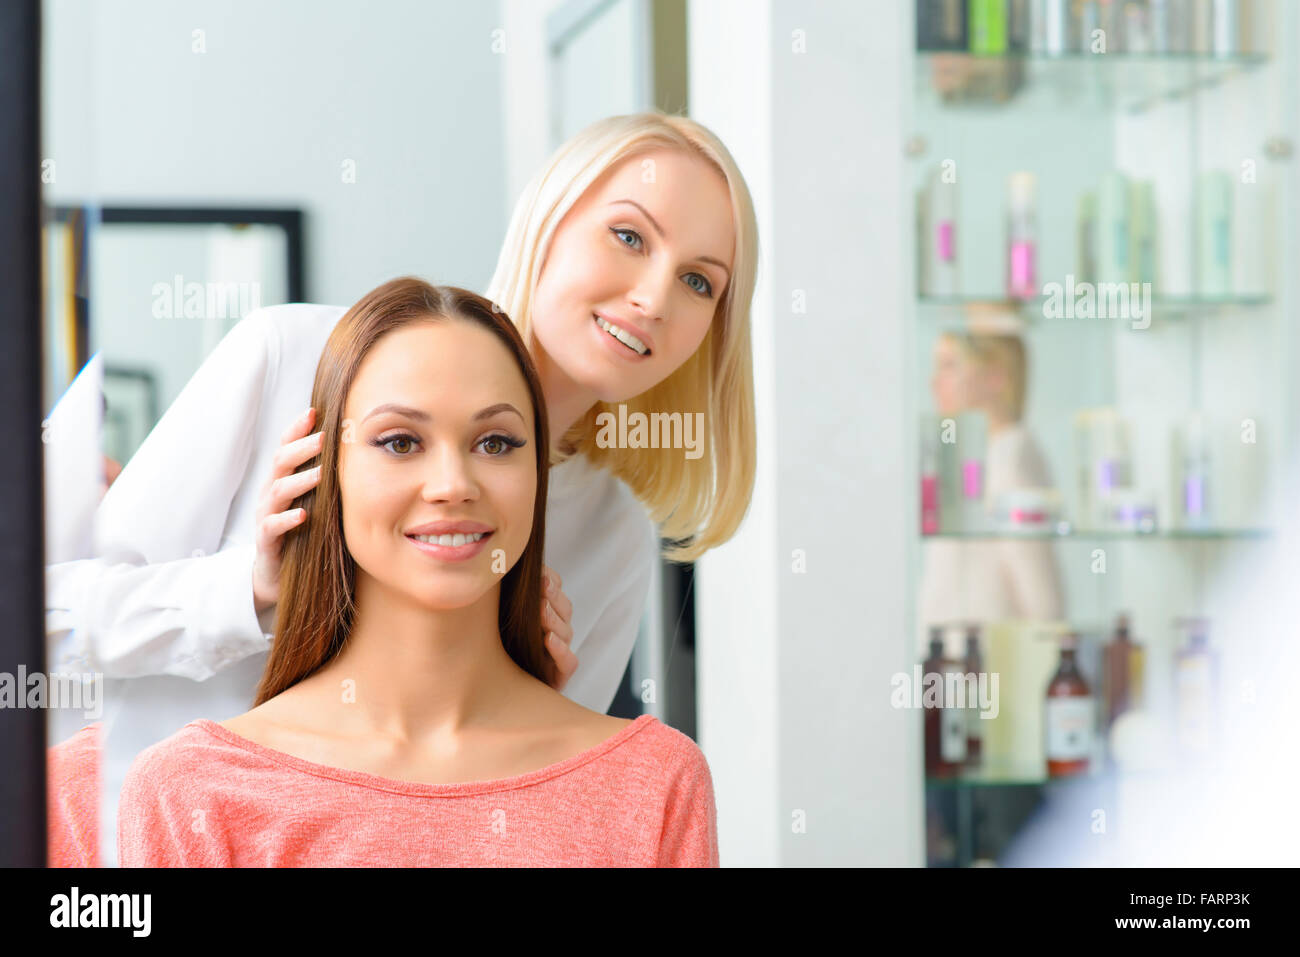 Stylist is showing hairdo to her client. - Stock Image